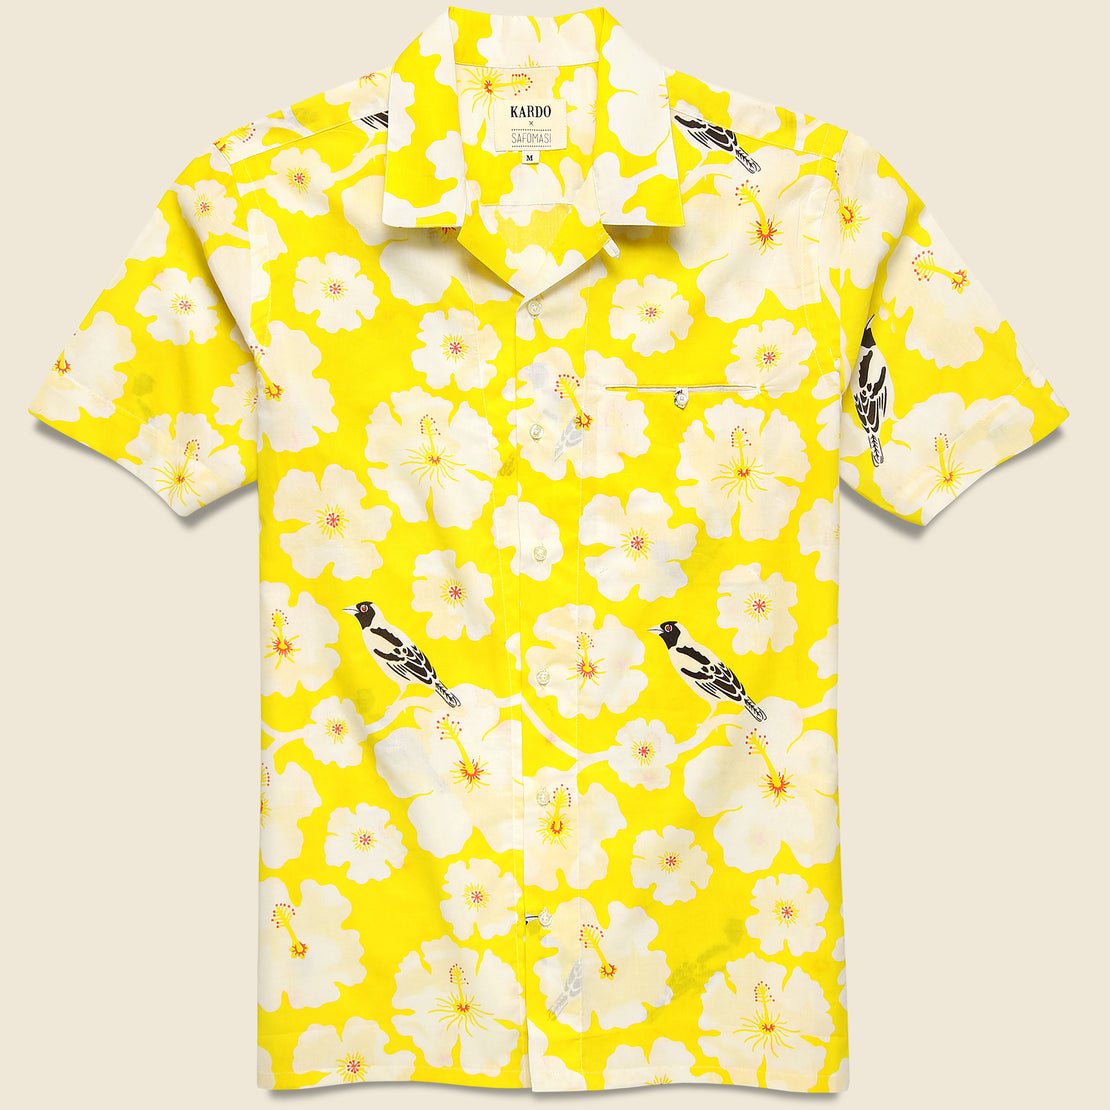 Kardo Kendrick Shirt - Yellow